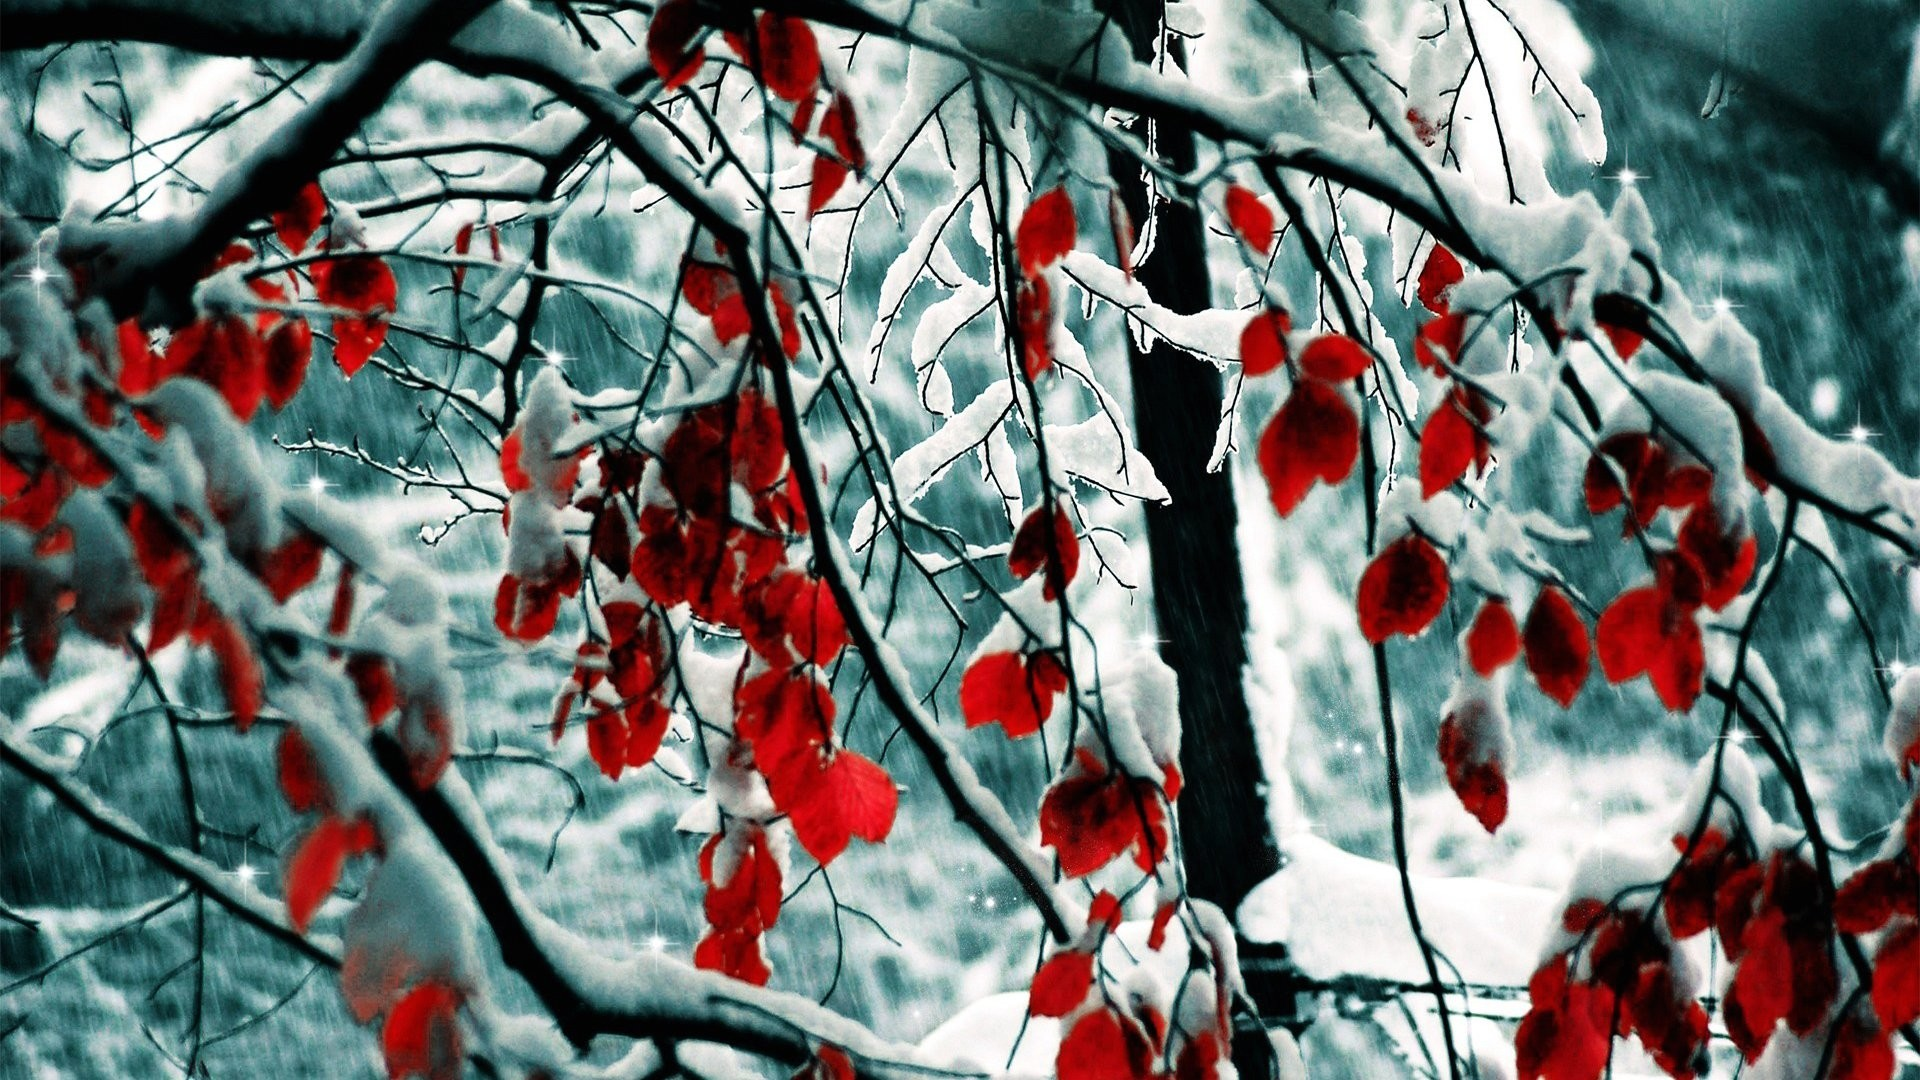 1920x1080 Wallpaper winter and red leaves 1920 x 1080 full hd